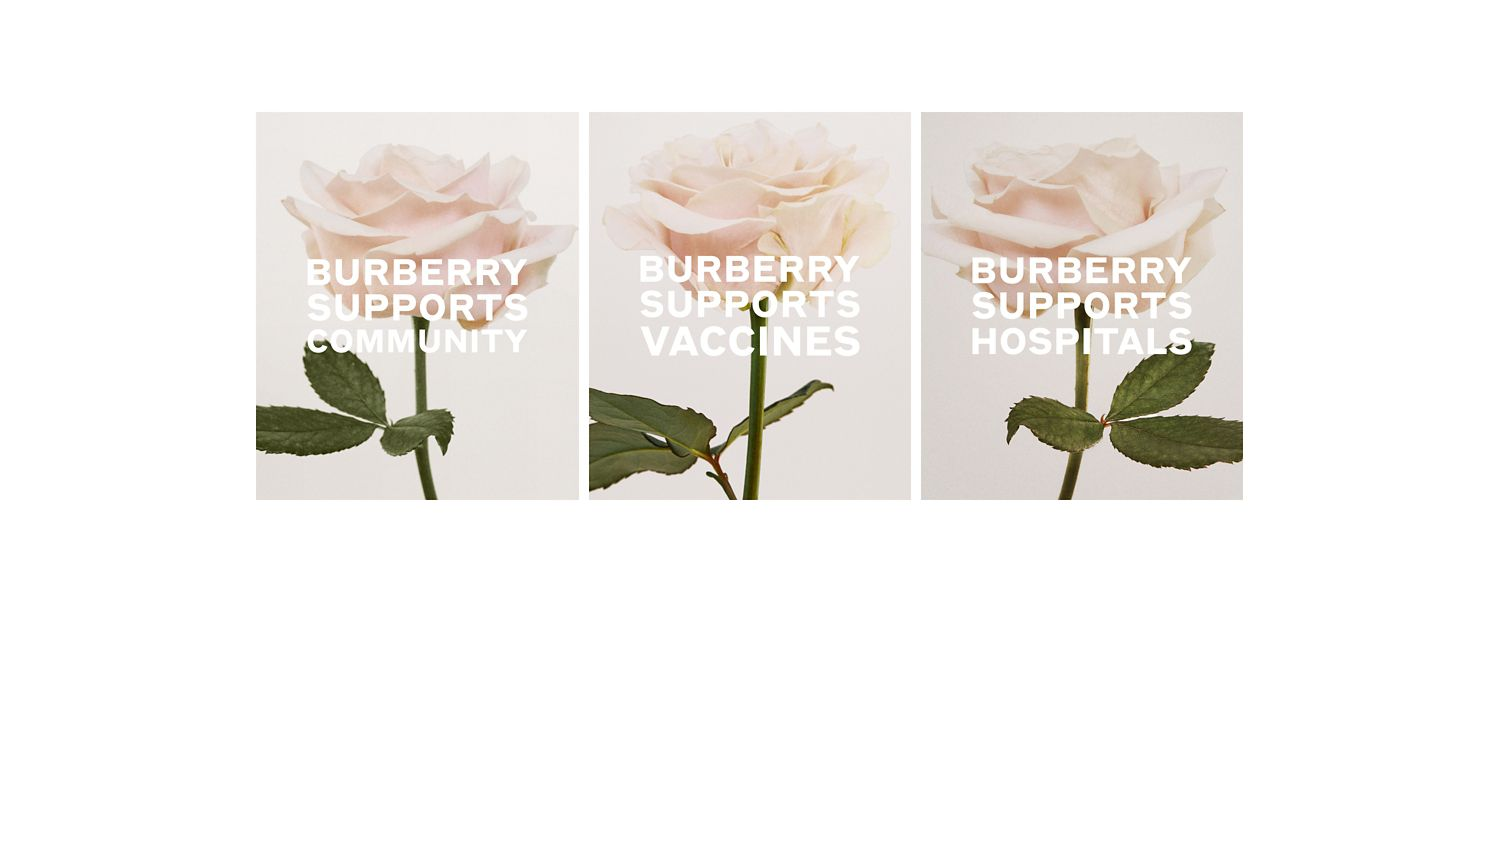 Burberry Supports the Fight<br>Against COVID-19